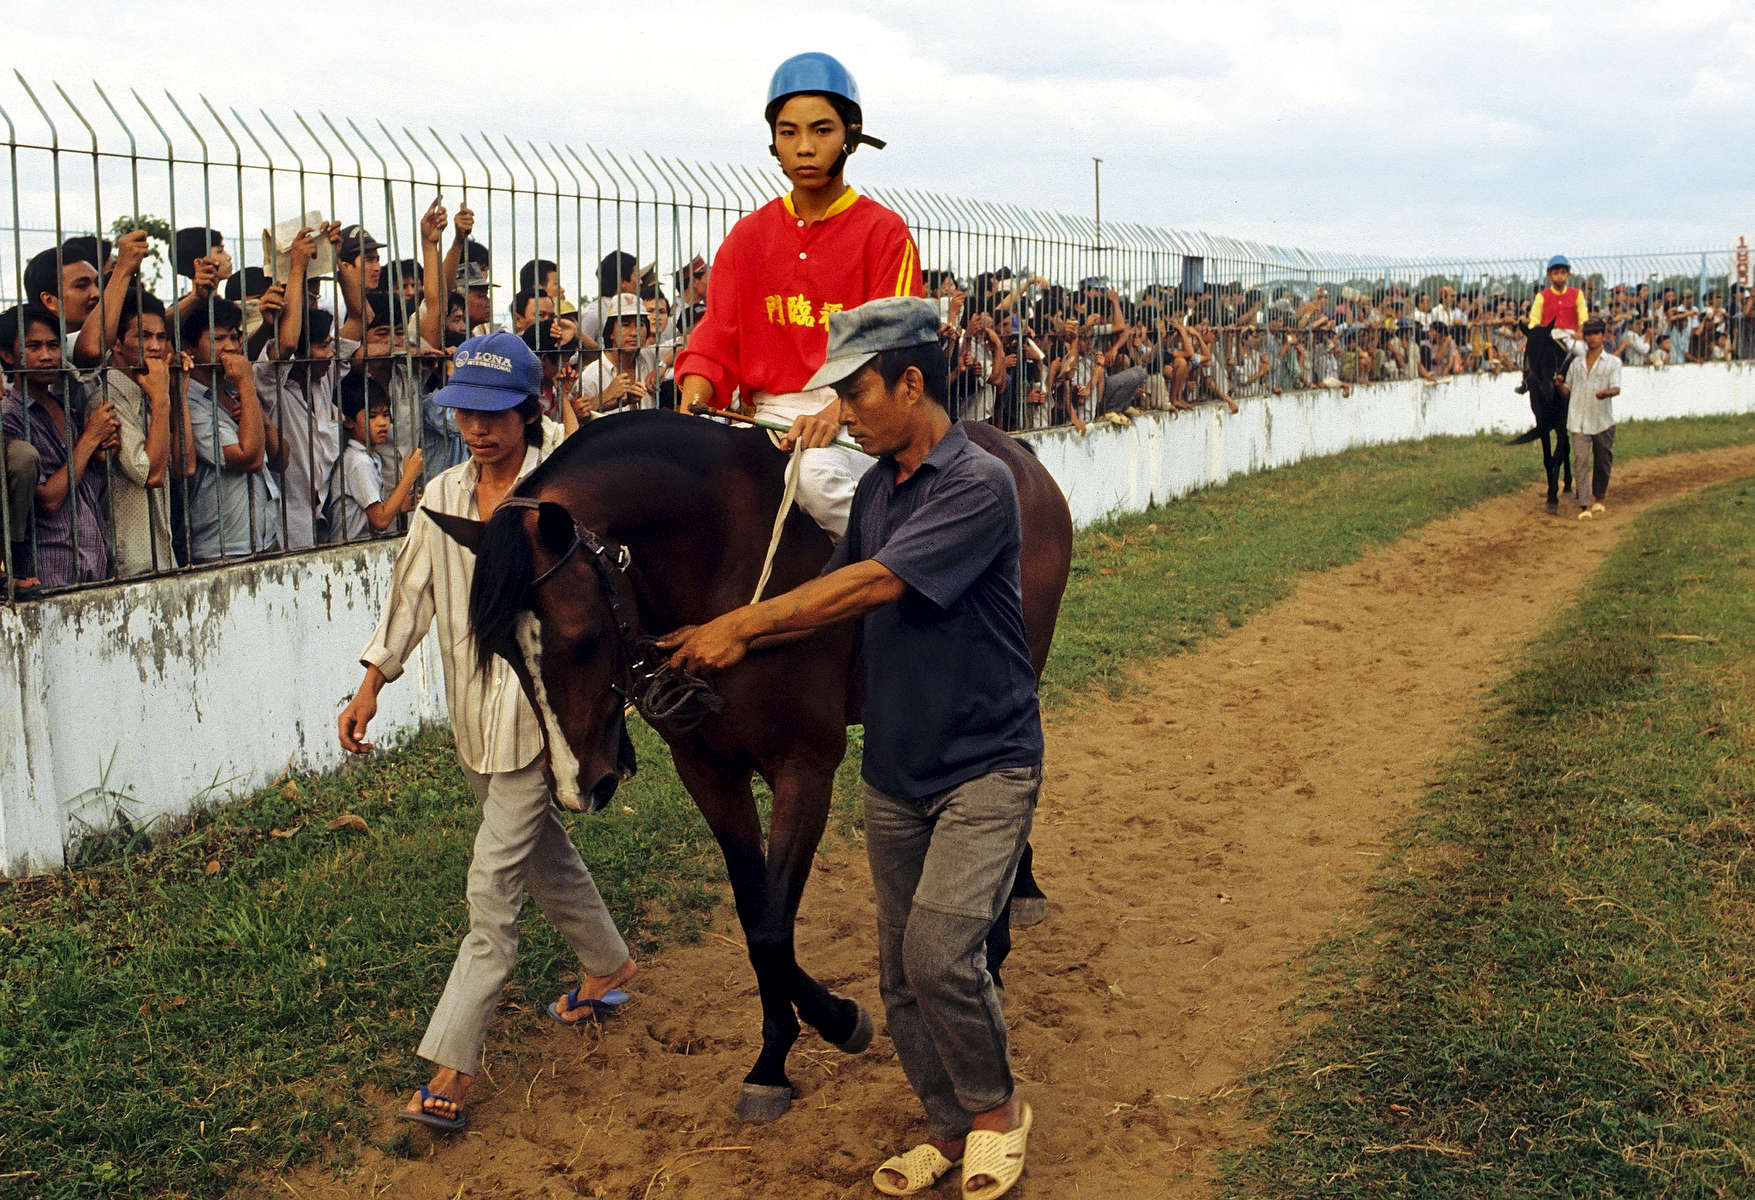 Vietnam37_Child_Jockey_PRINT